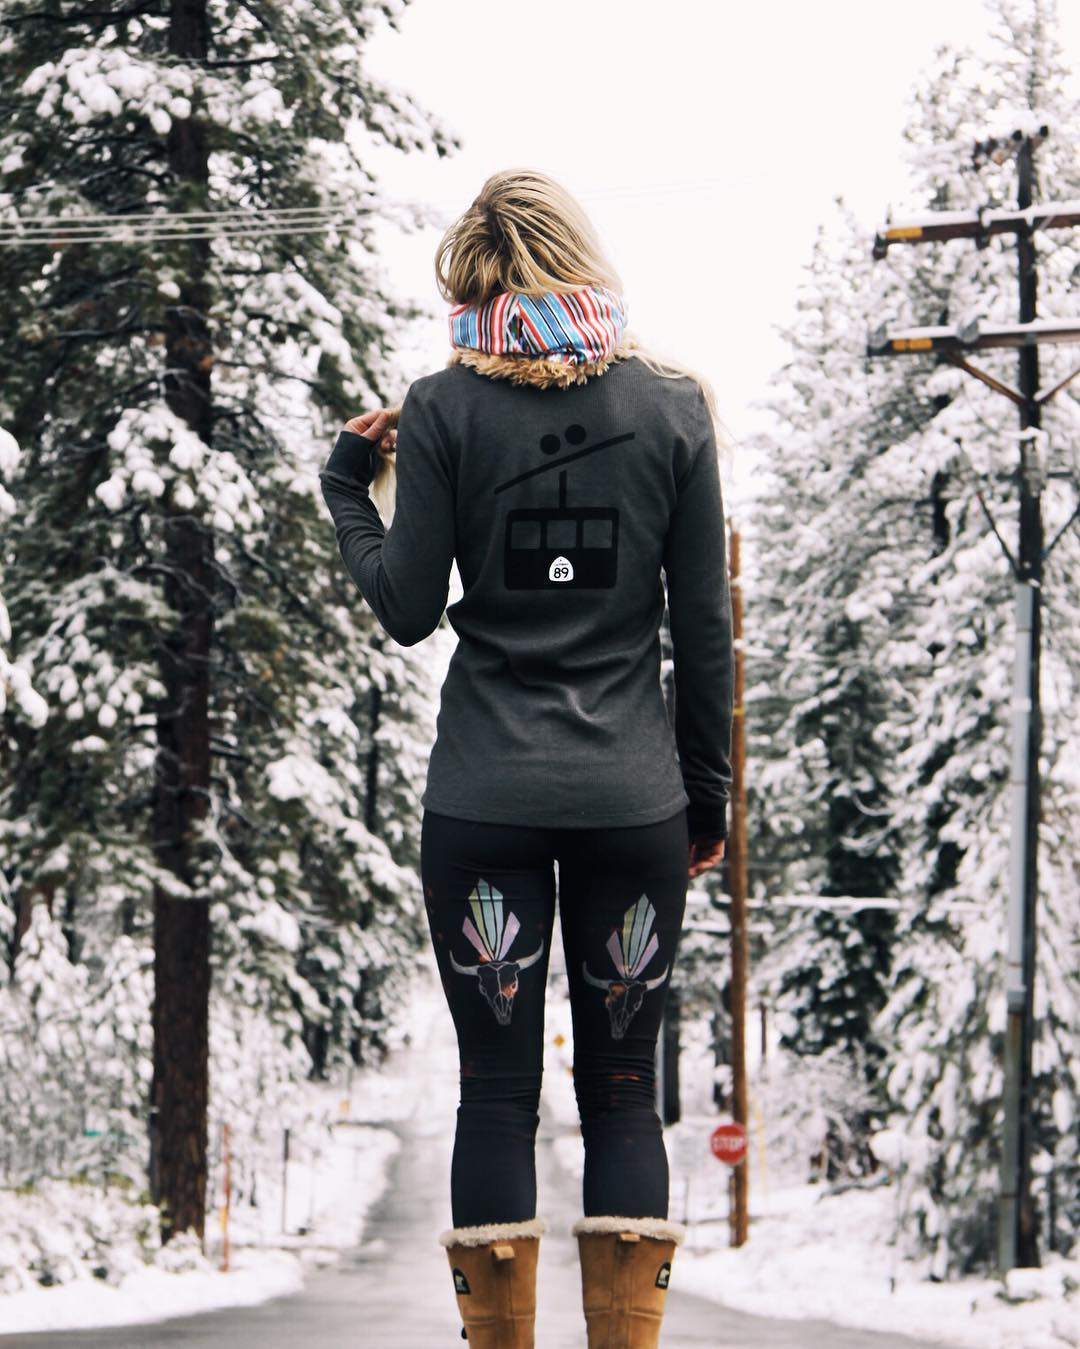 Tahoe babe @sunnyyddee is ready for snow in our gondola thermal (shop: link in profile). #CA89 #CA89Ambassador